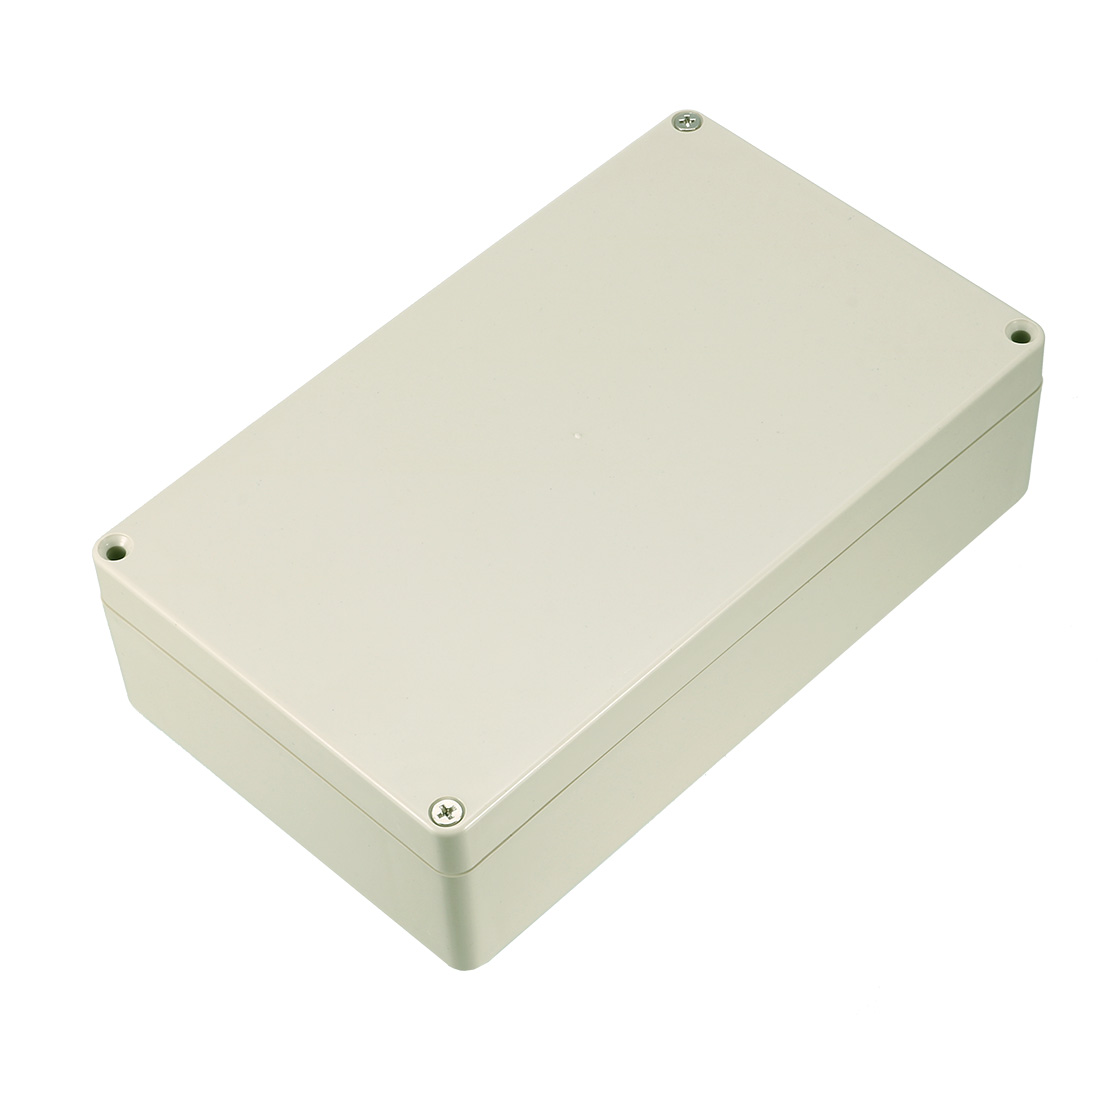 Surface Mounting Rectangle Waterproof Plastic Sealed Electric Power Protector Junction Box Cover 200mm x 120mm x 55mm